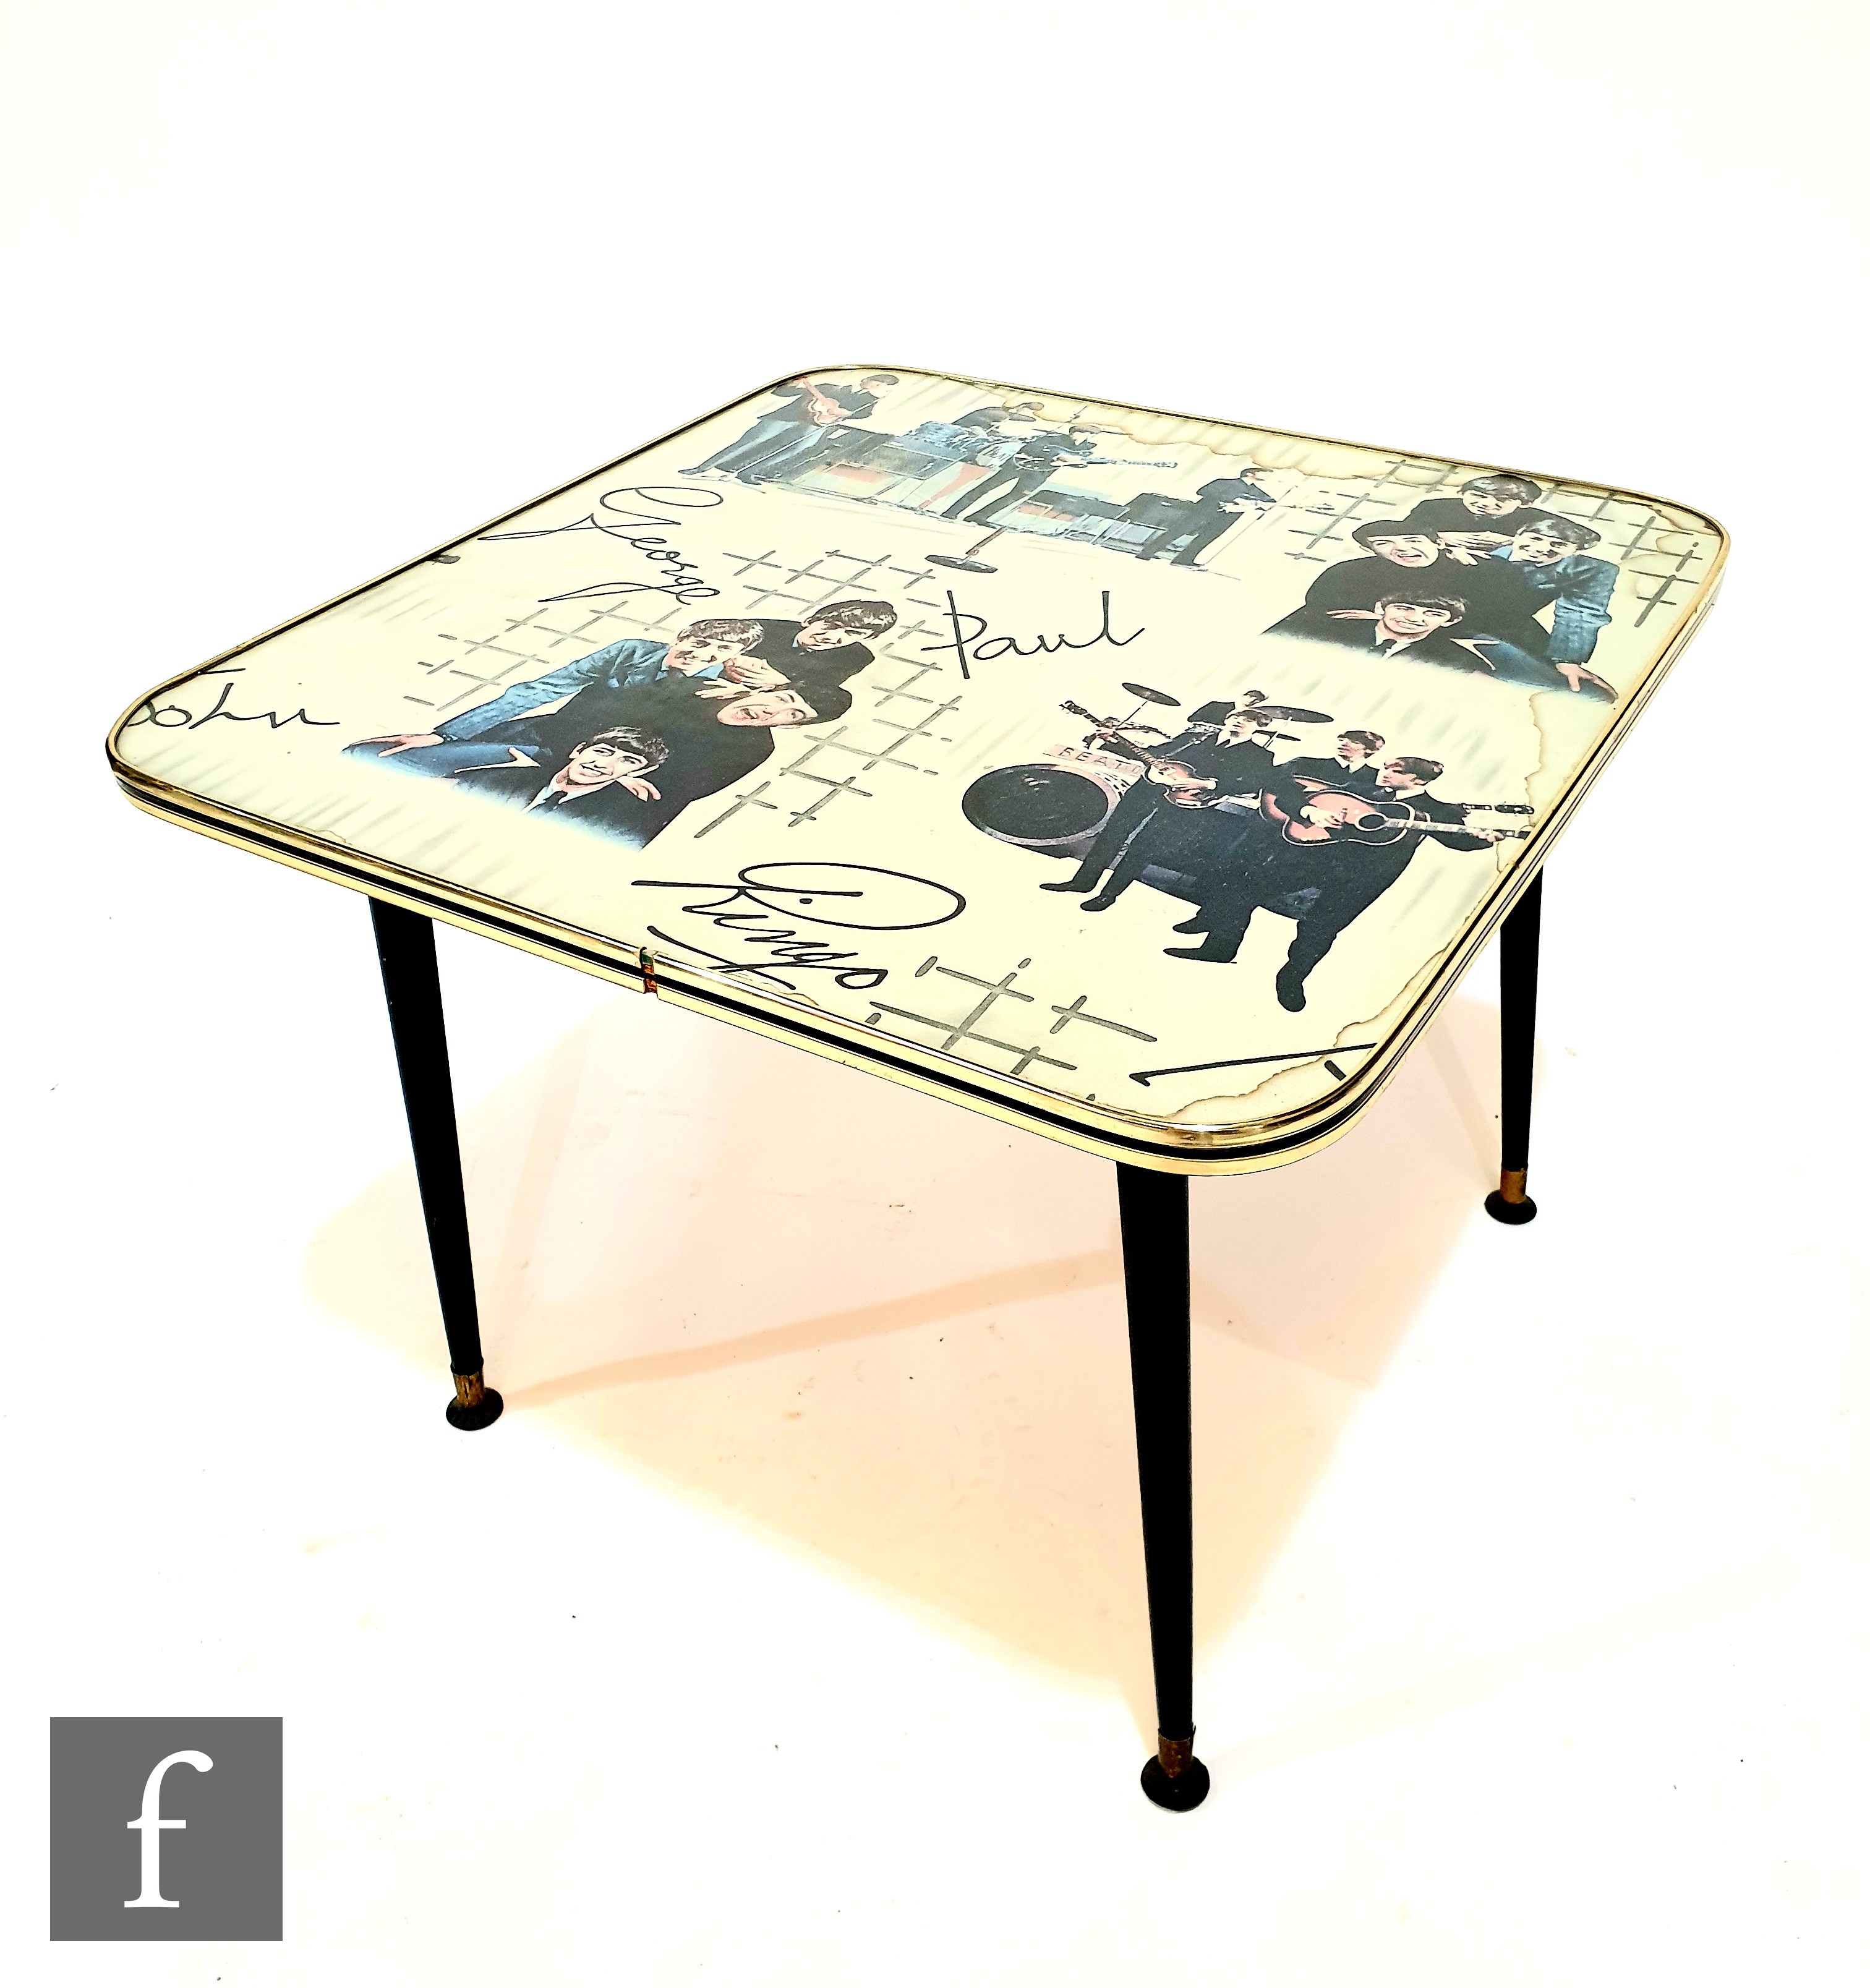 An original 1960s Beatles table, the splayed black legs with gilt edged plastic square top with